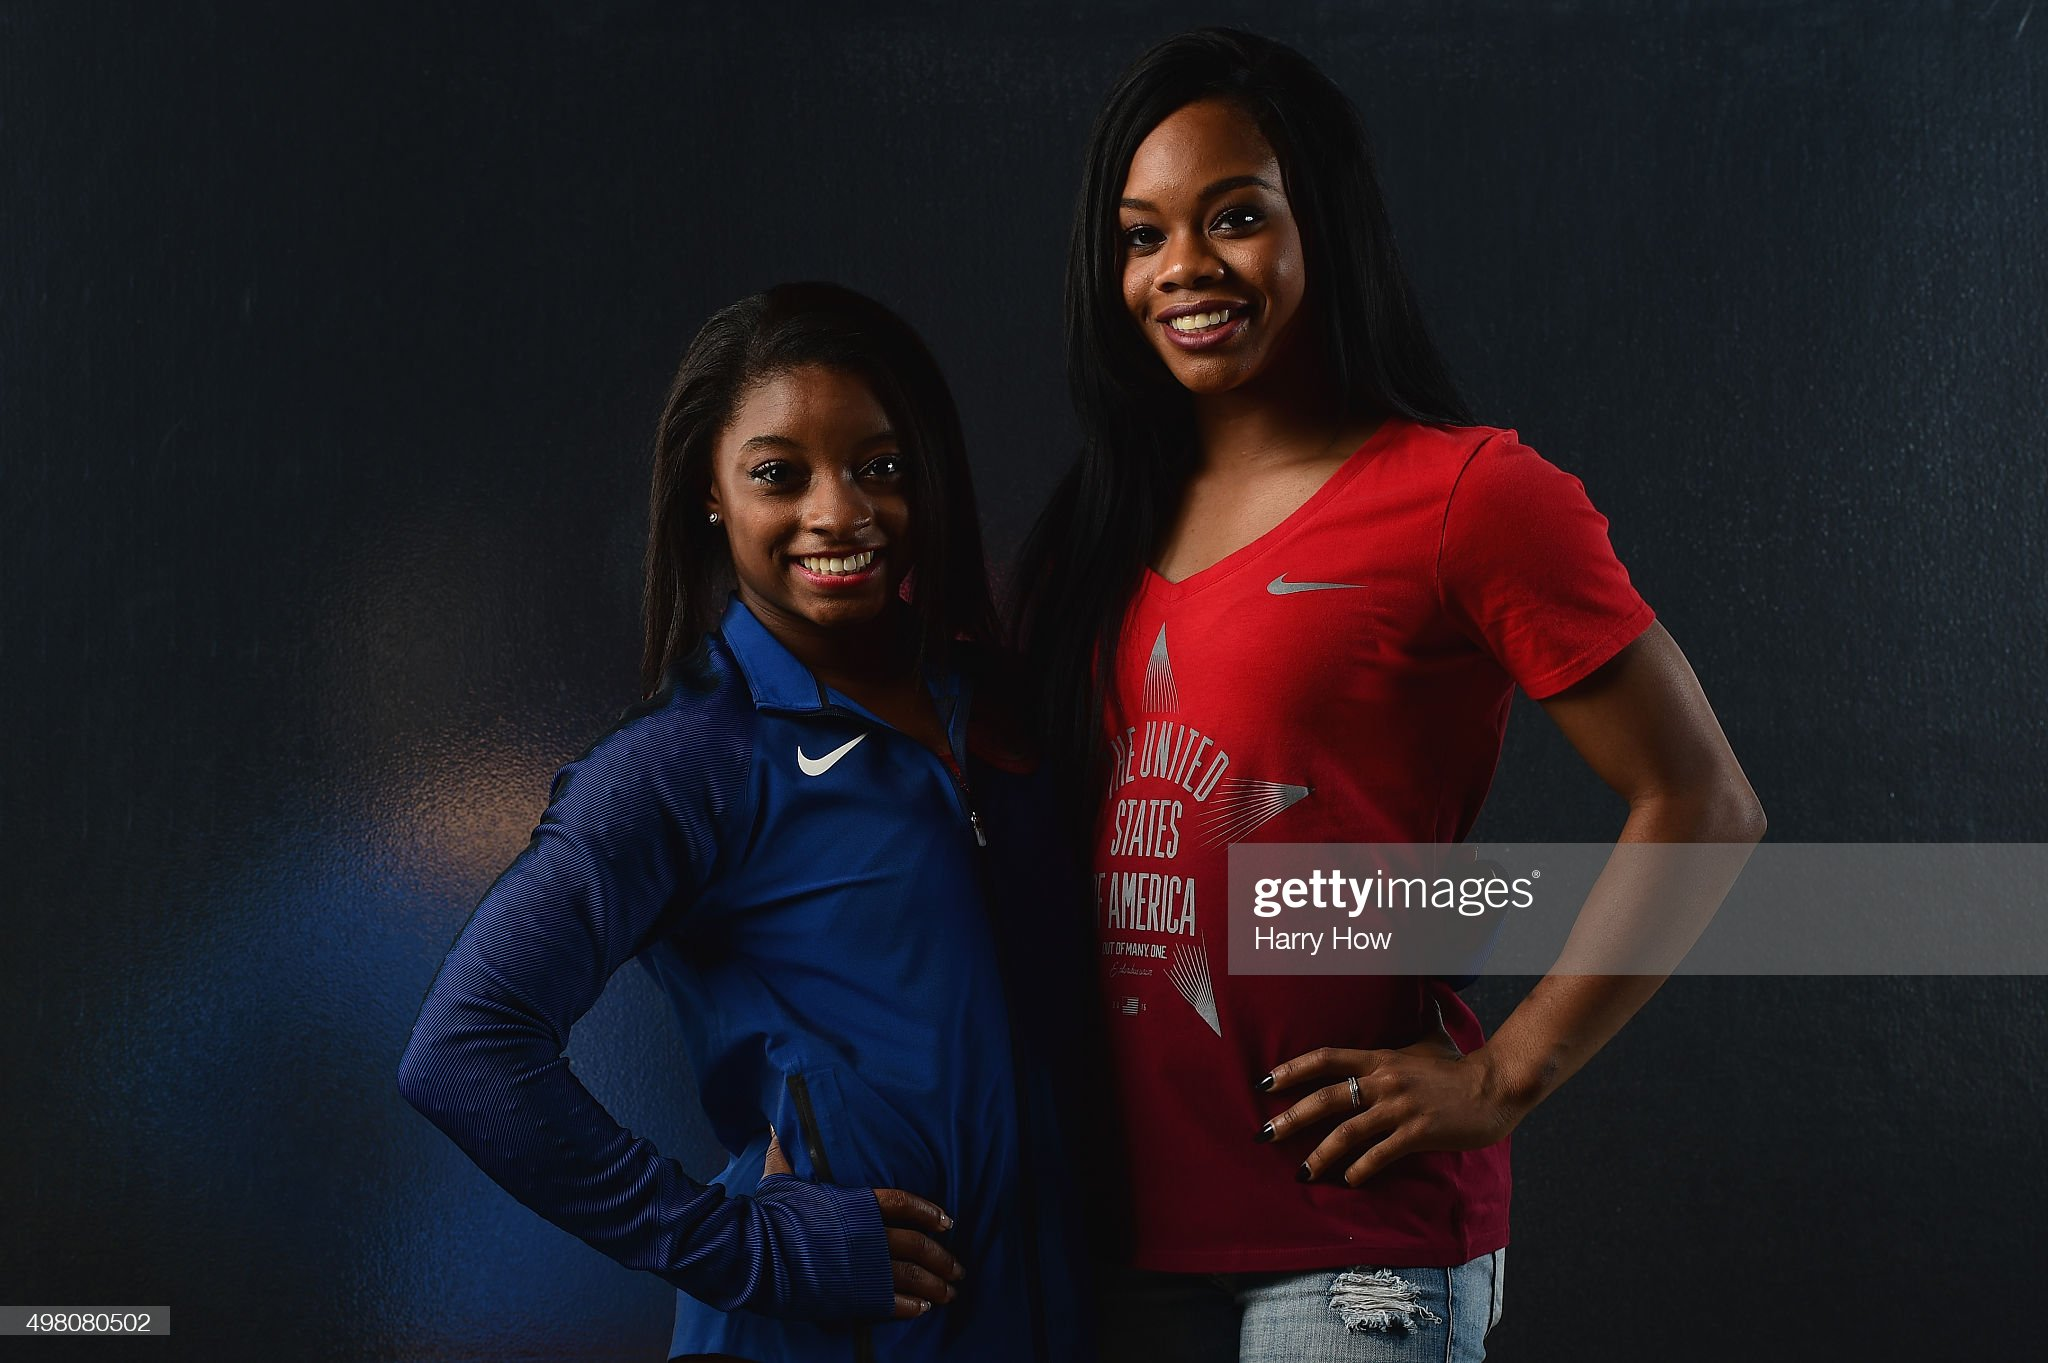 ¿Cuánto mide Gabby Douglas? - Real height Gymnasts-simone-biles-and-gabby-douglas-pose-for-a-portrait-at-the-picture-id498080502?s=2048x2048